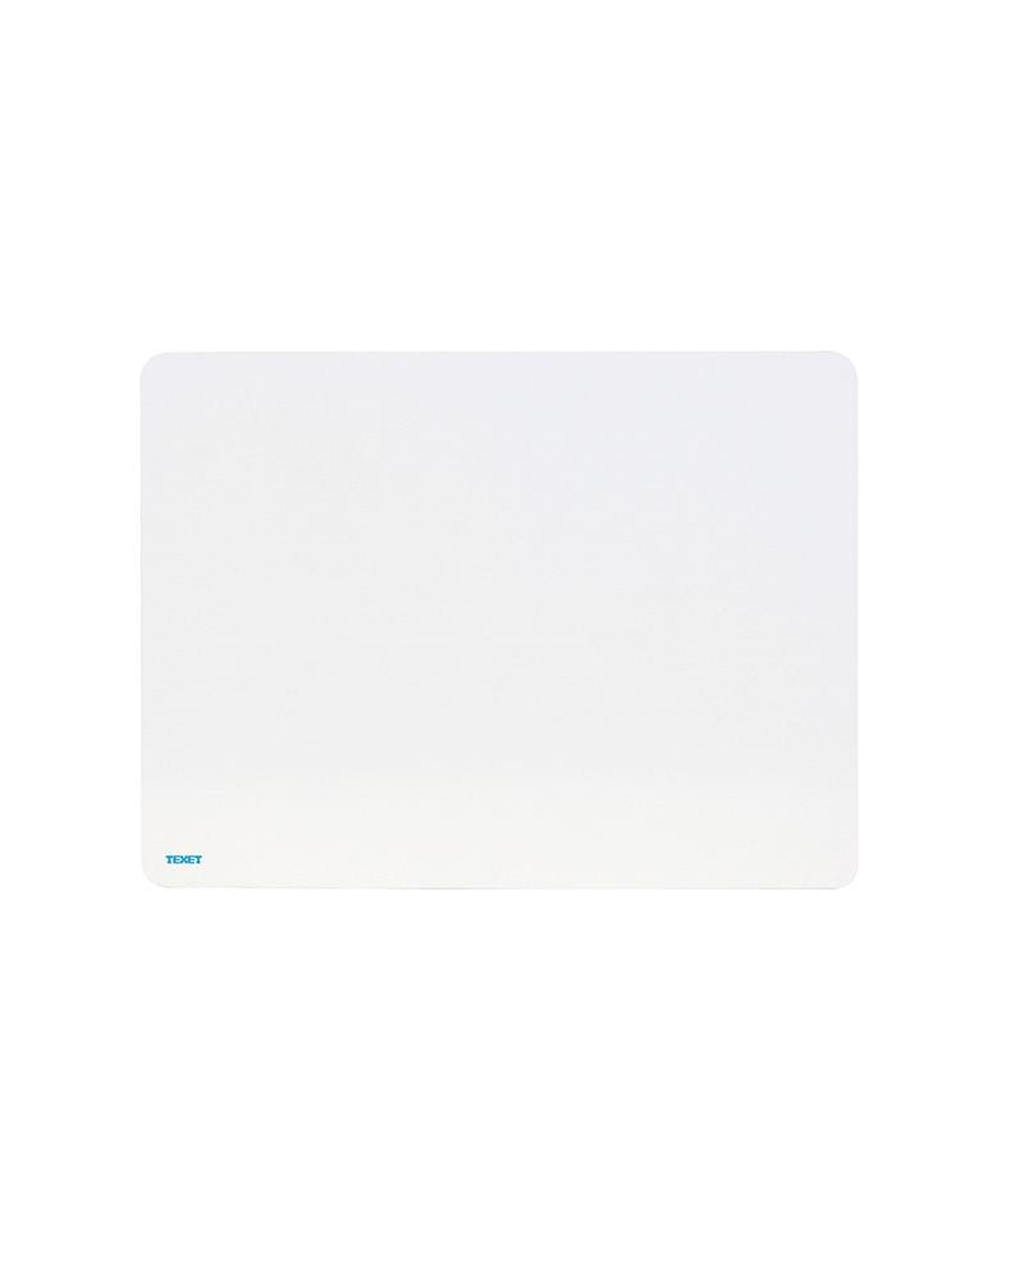 A4 Plain Whiteboards